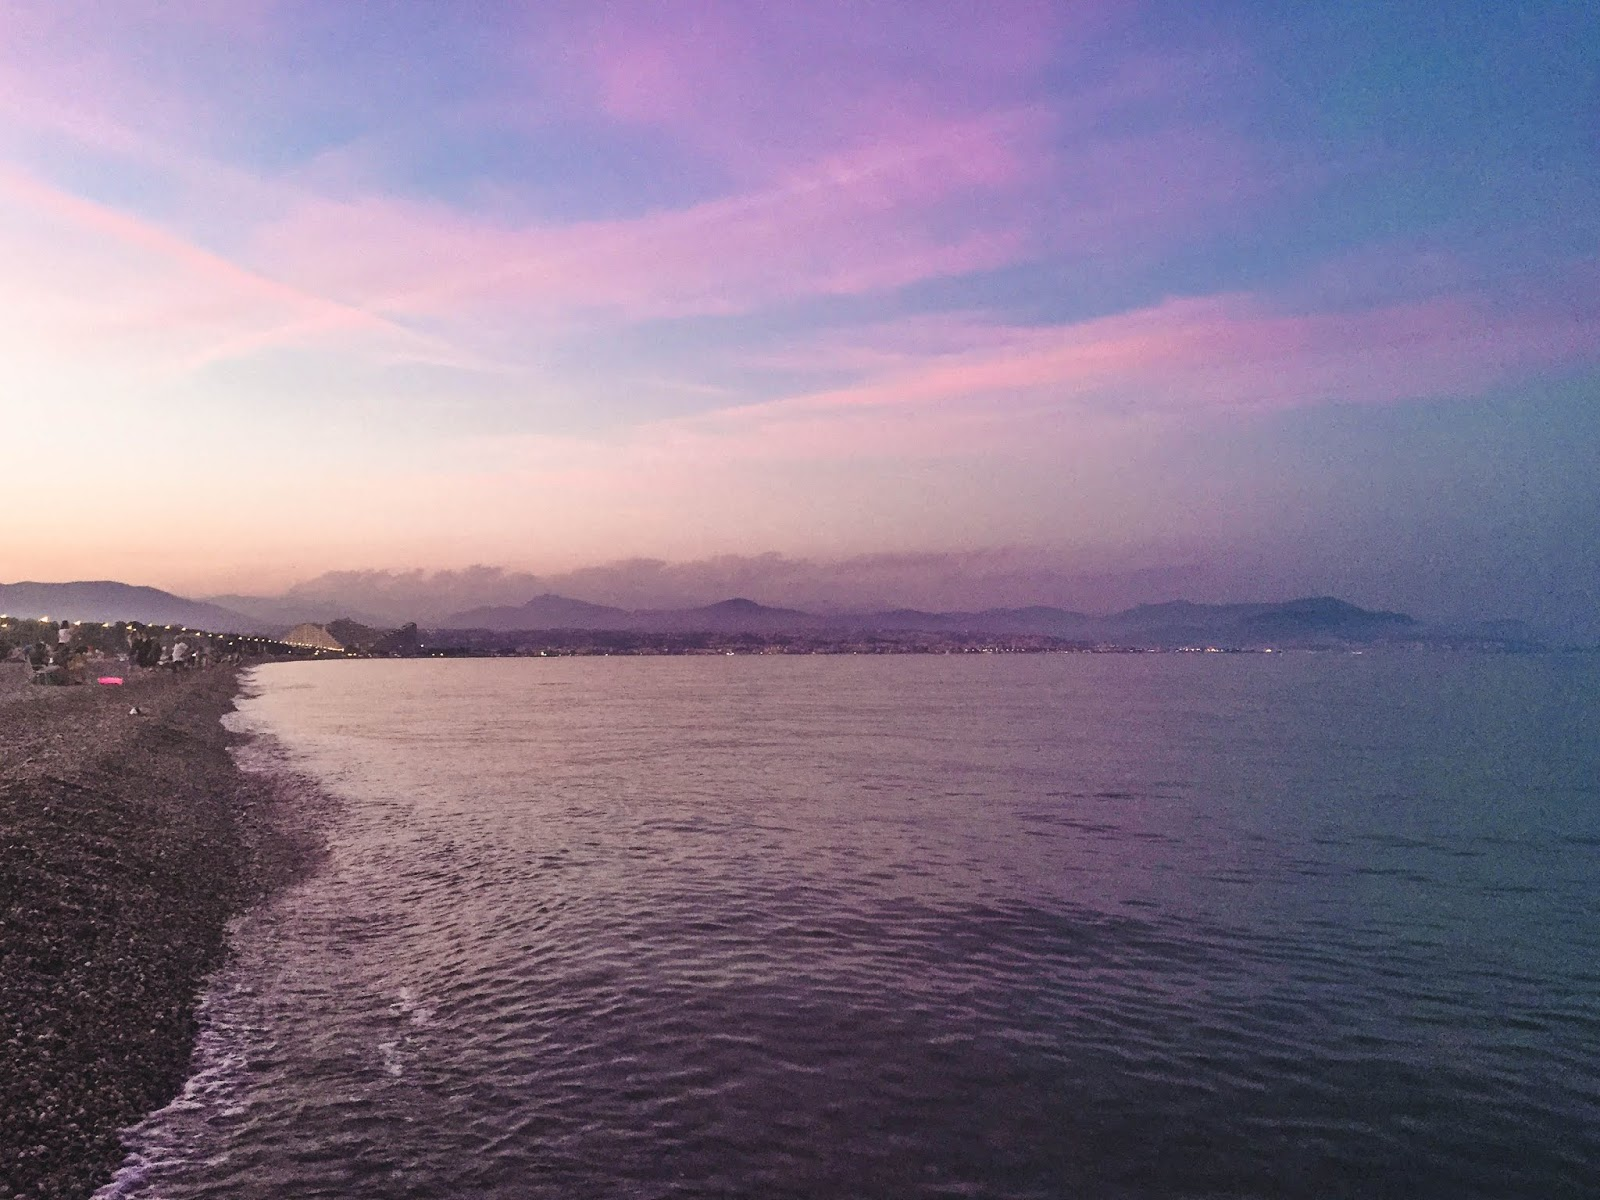 Day Trip to Antibes France